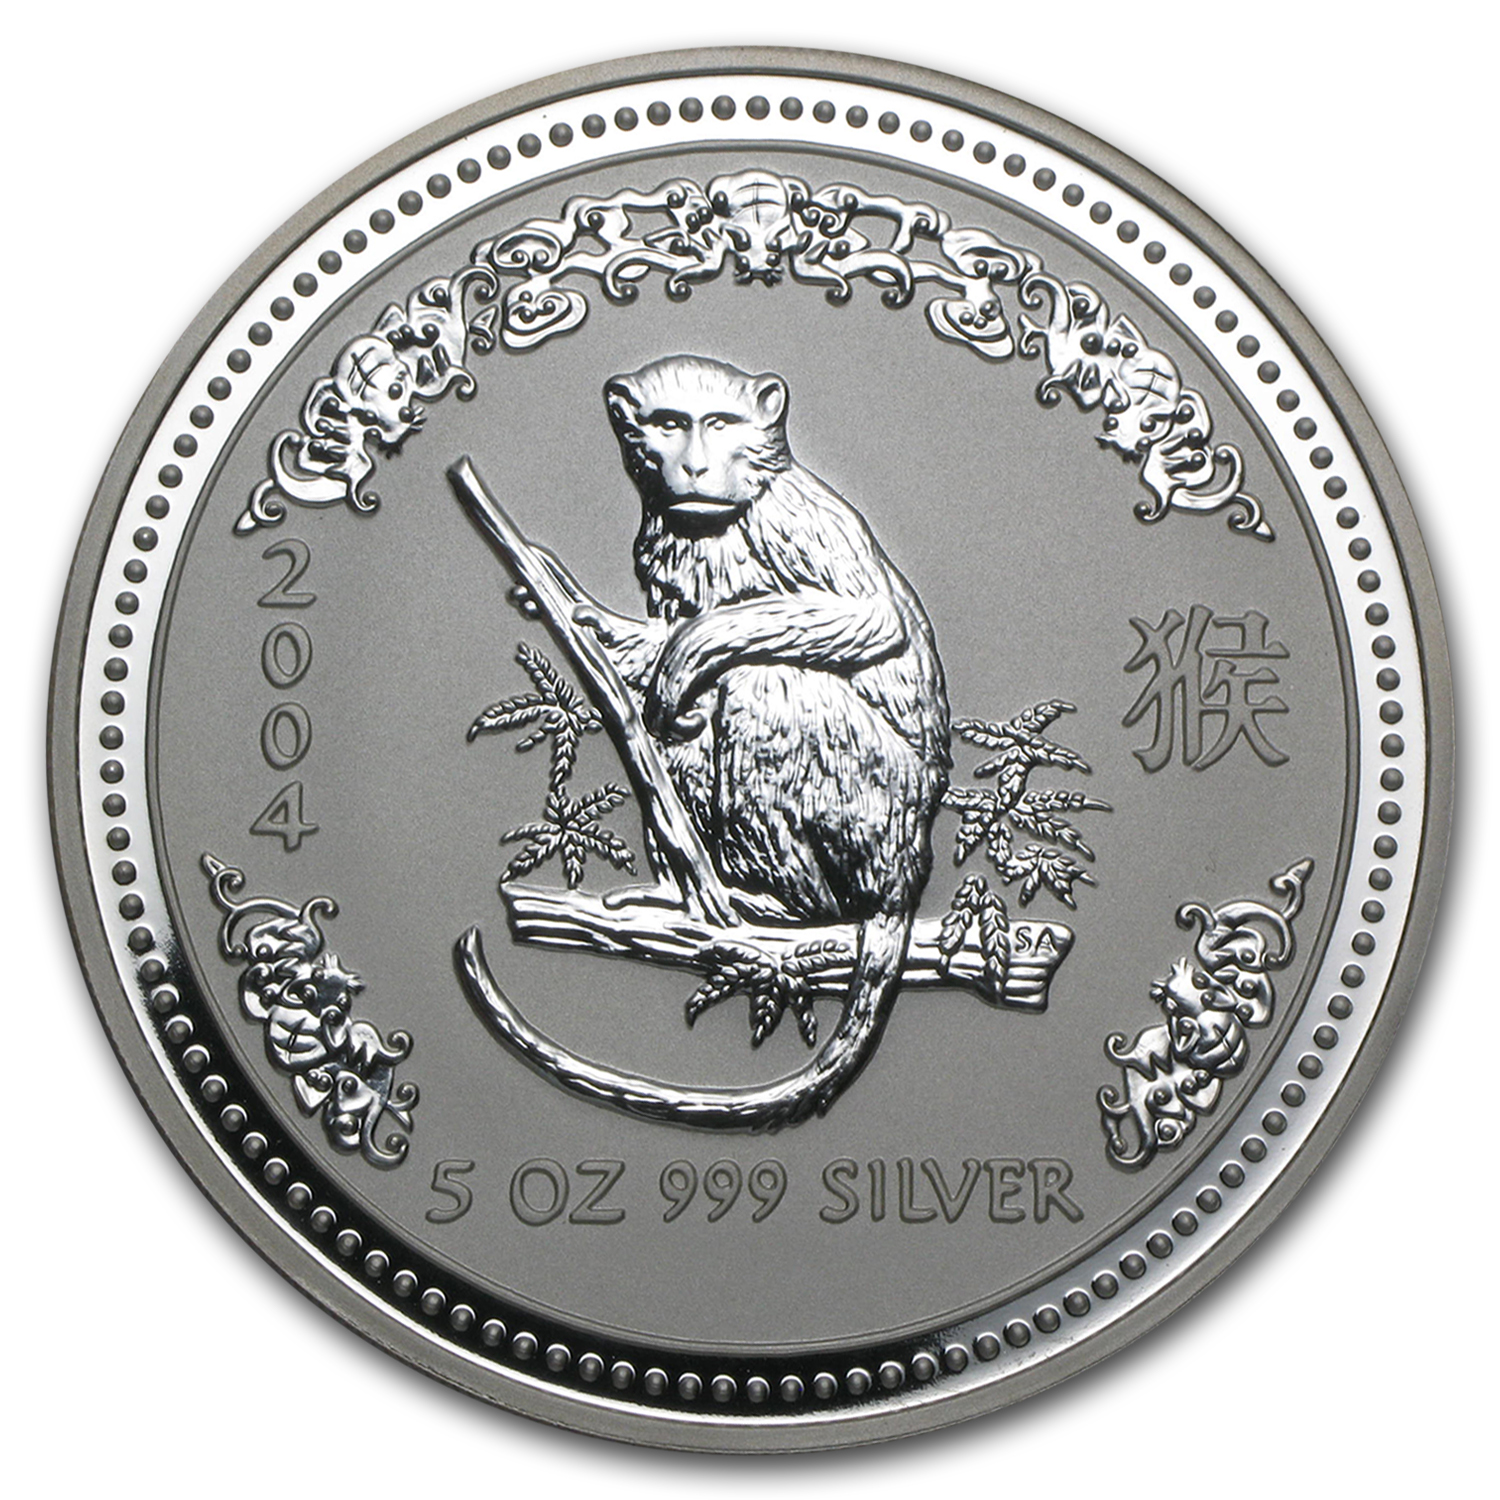 2004 5 oz Silver Australian Year of the Monkey BU